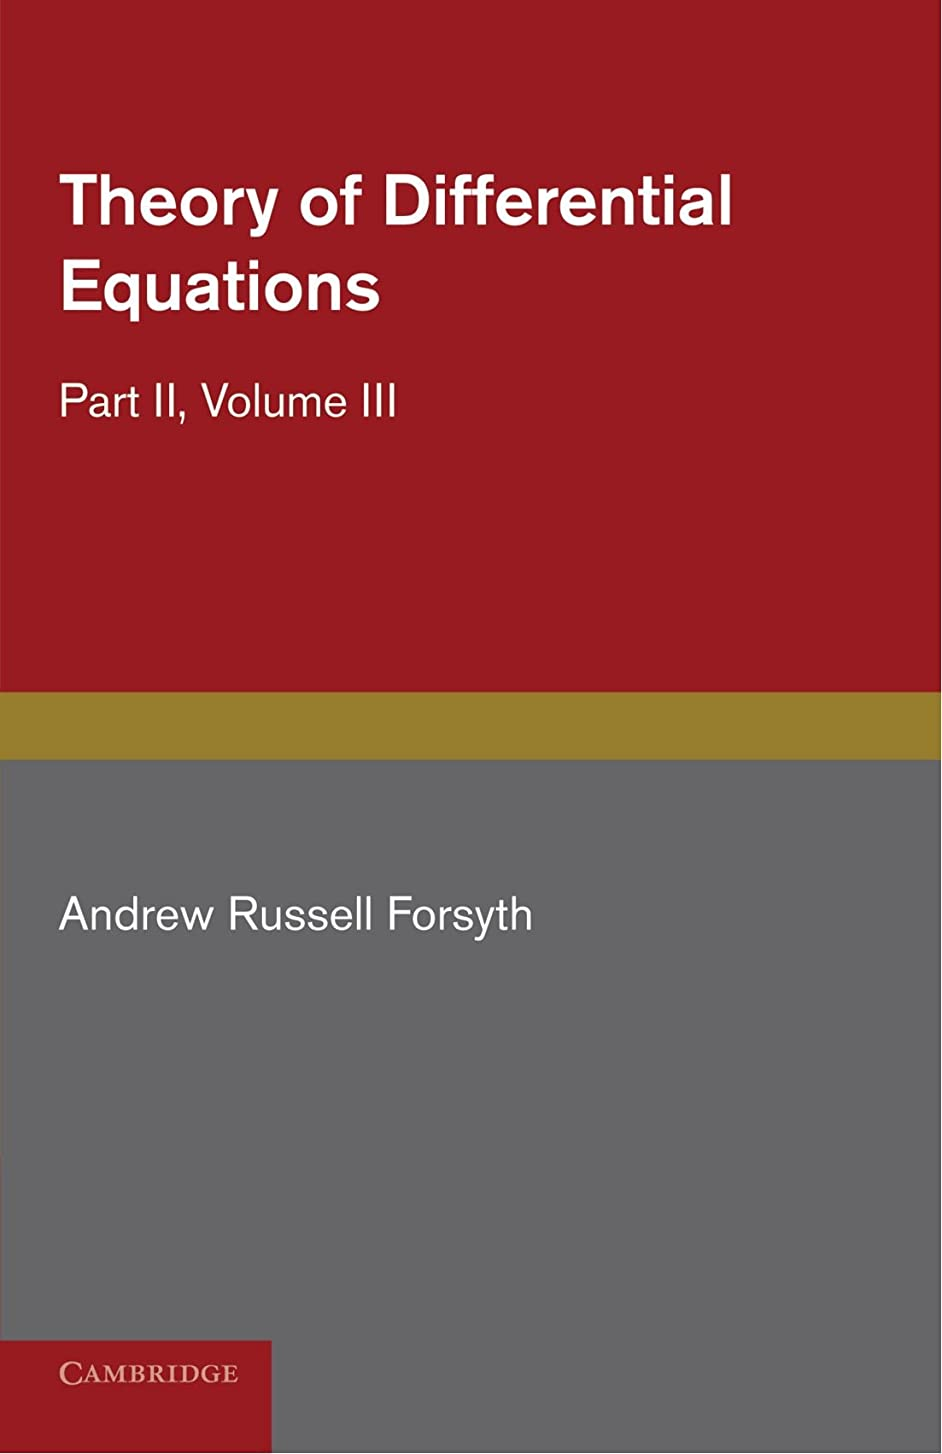 だらしないホール思い出させるTheory of Differential Equations: Ordinary Equations, Not Linear (Theory of Differential Equations 6 Volume Set)